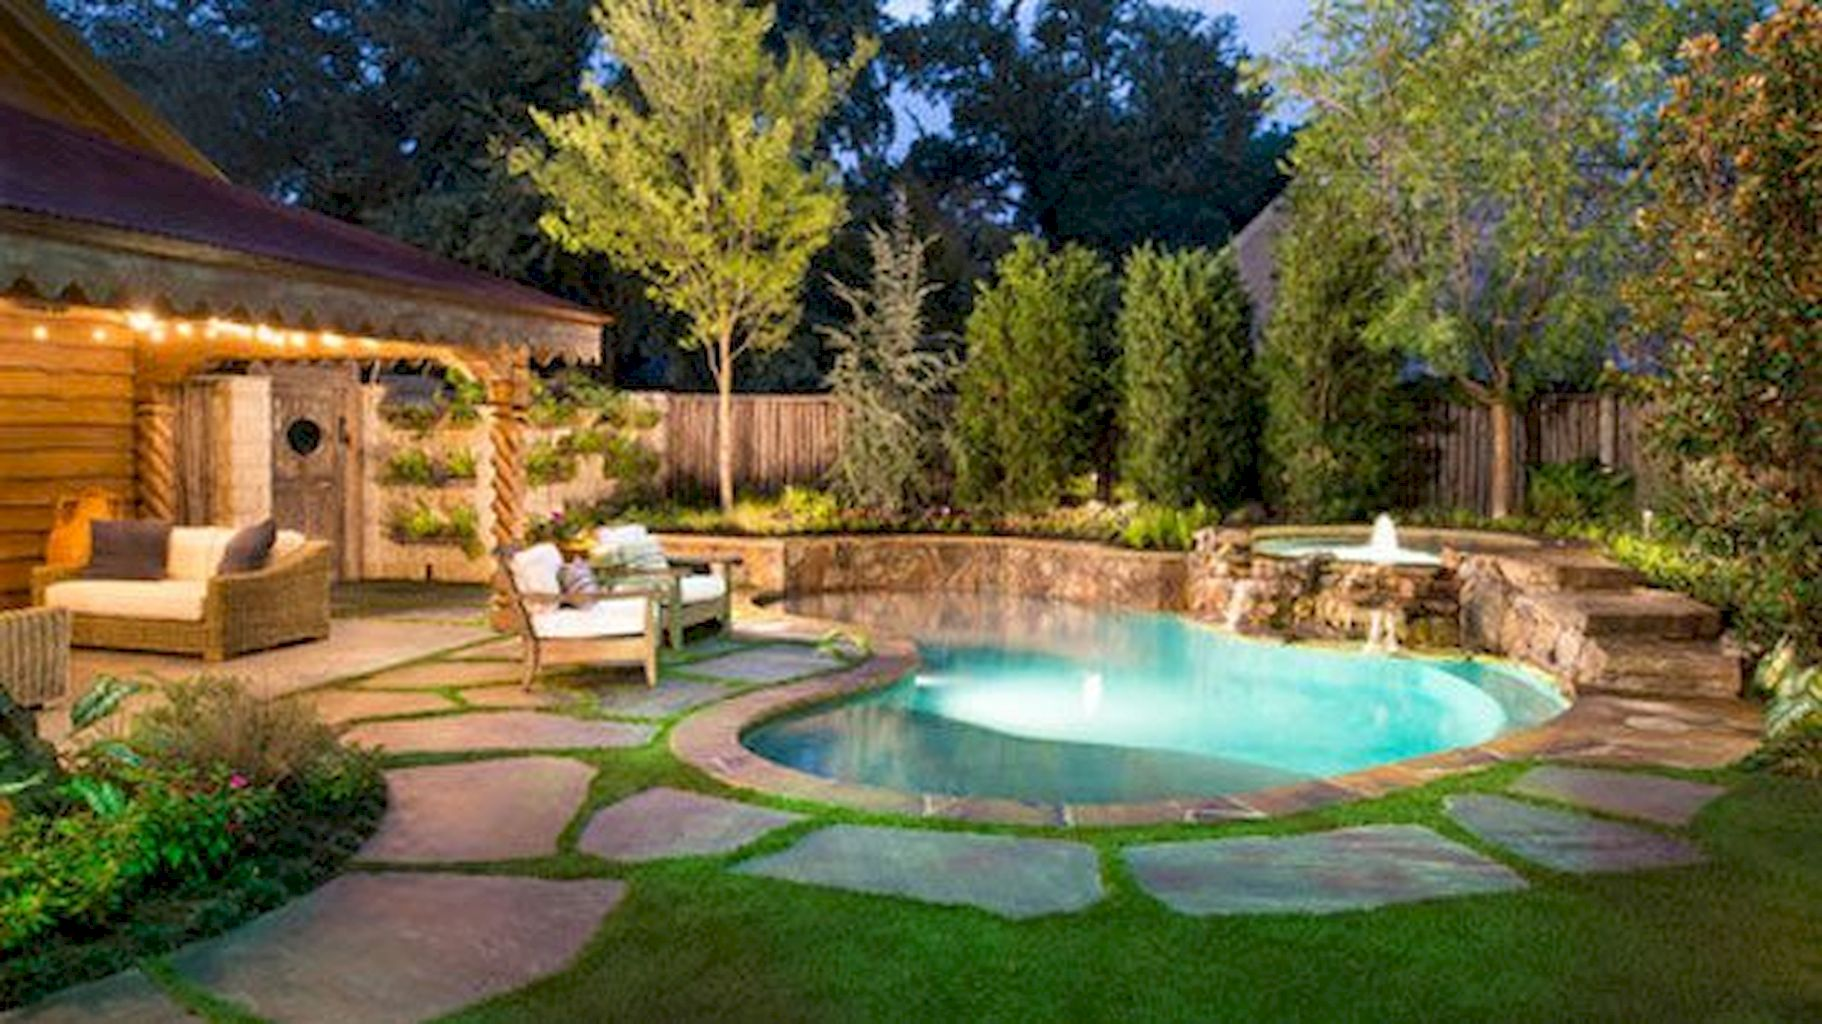 Backyard Landscaping249